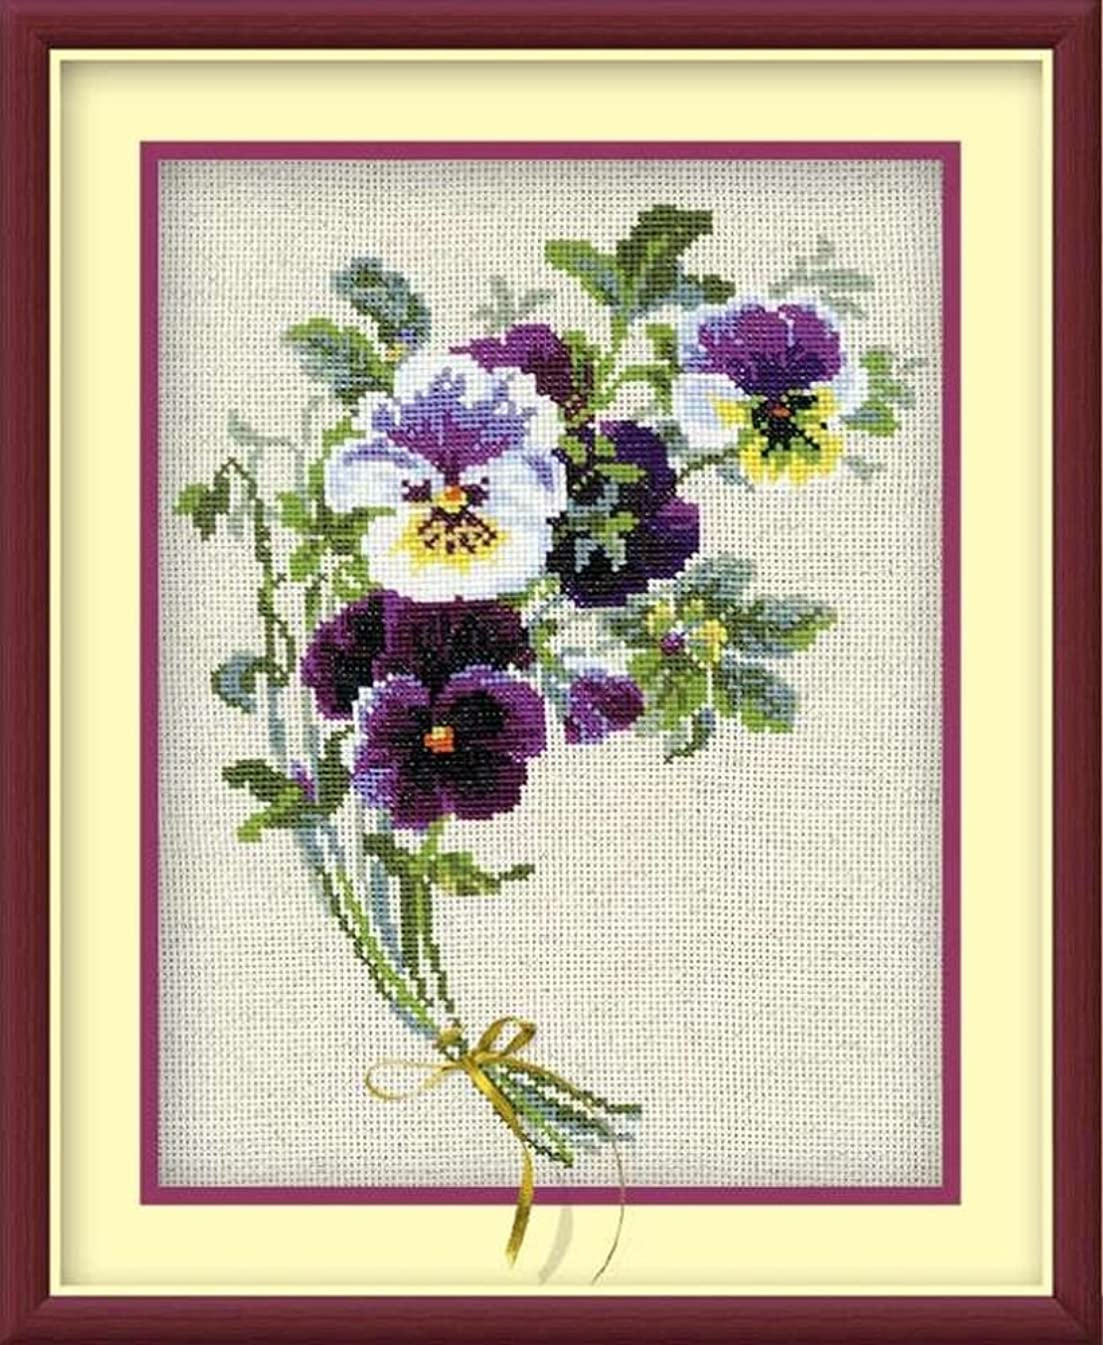 RIOLIS 1020 - Bunch of Pansies - Counted Cross Stitch Kit 9?